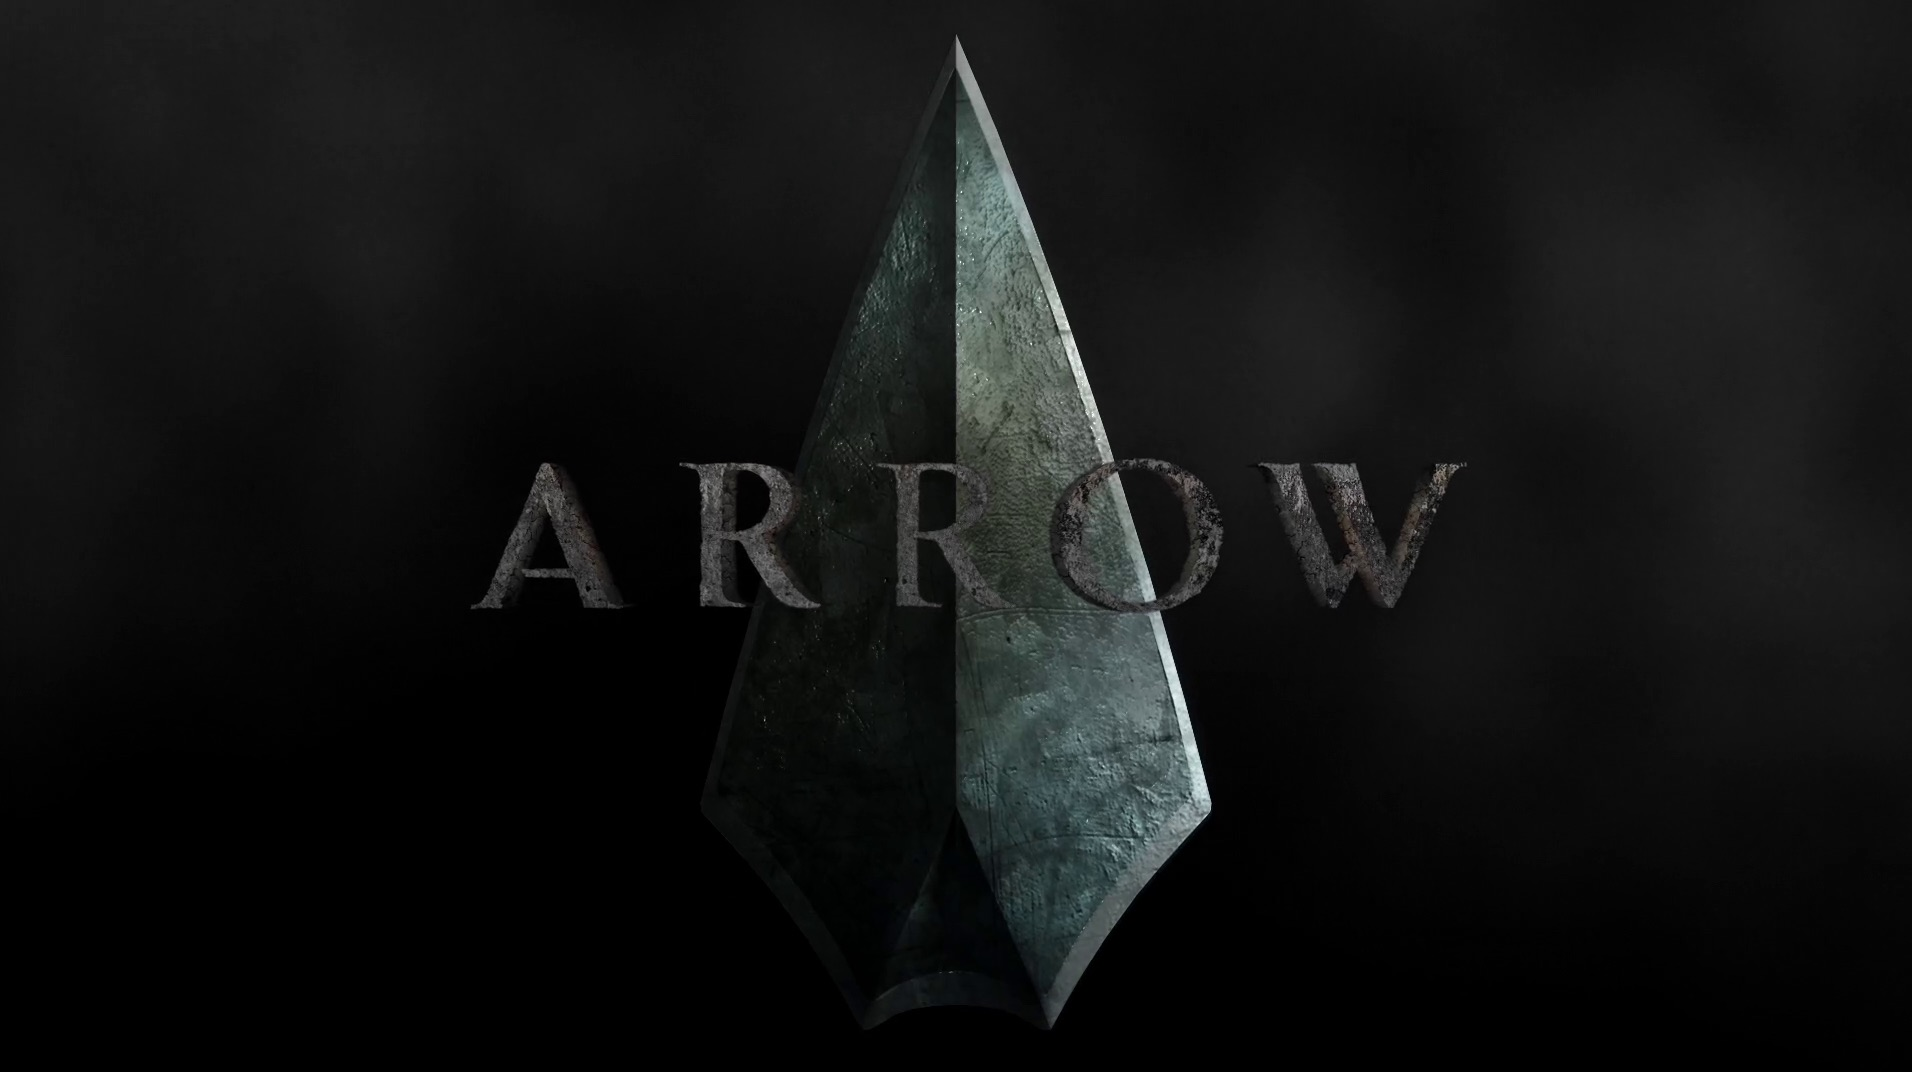 Arrow (TV Series) Episode: All For Nothing